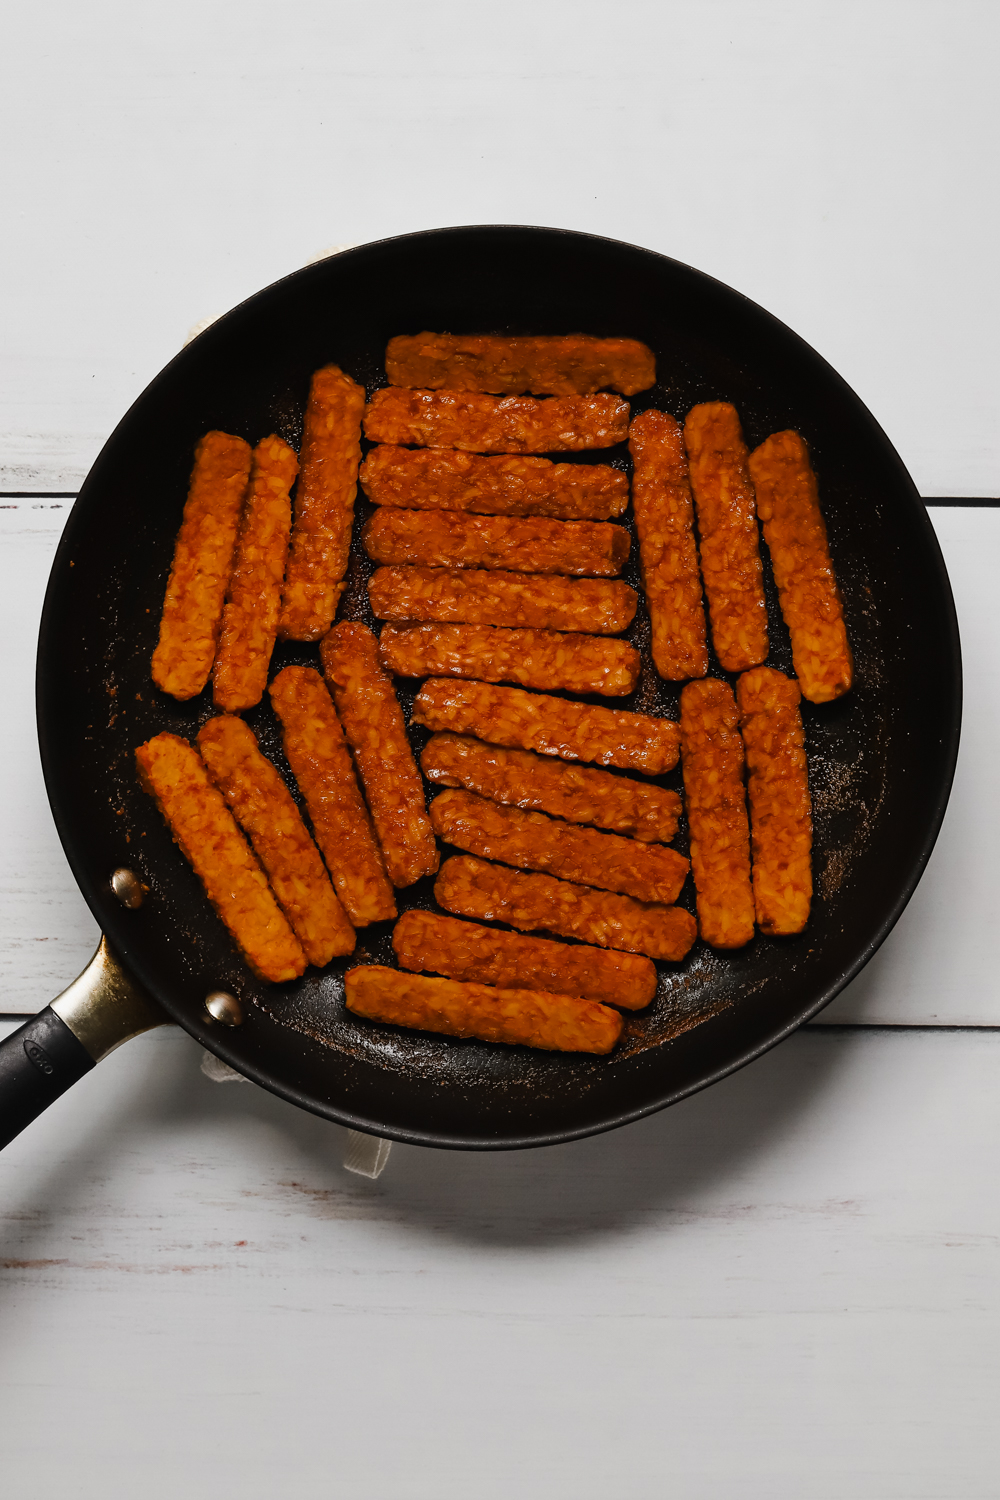 Pieces of marinated tempeh in a large black skillet.